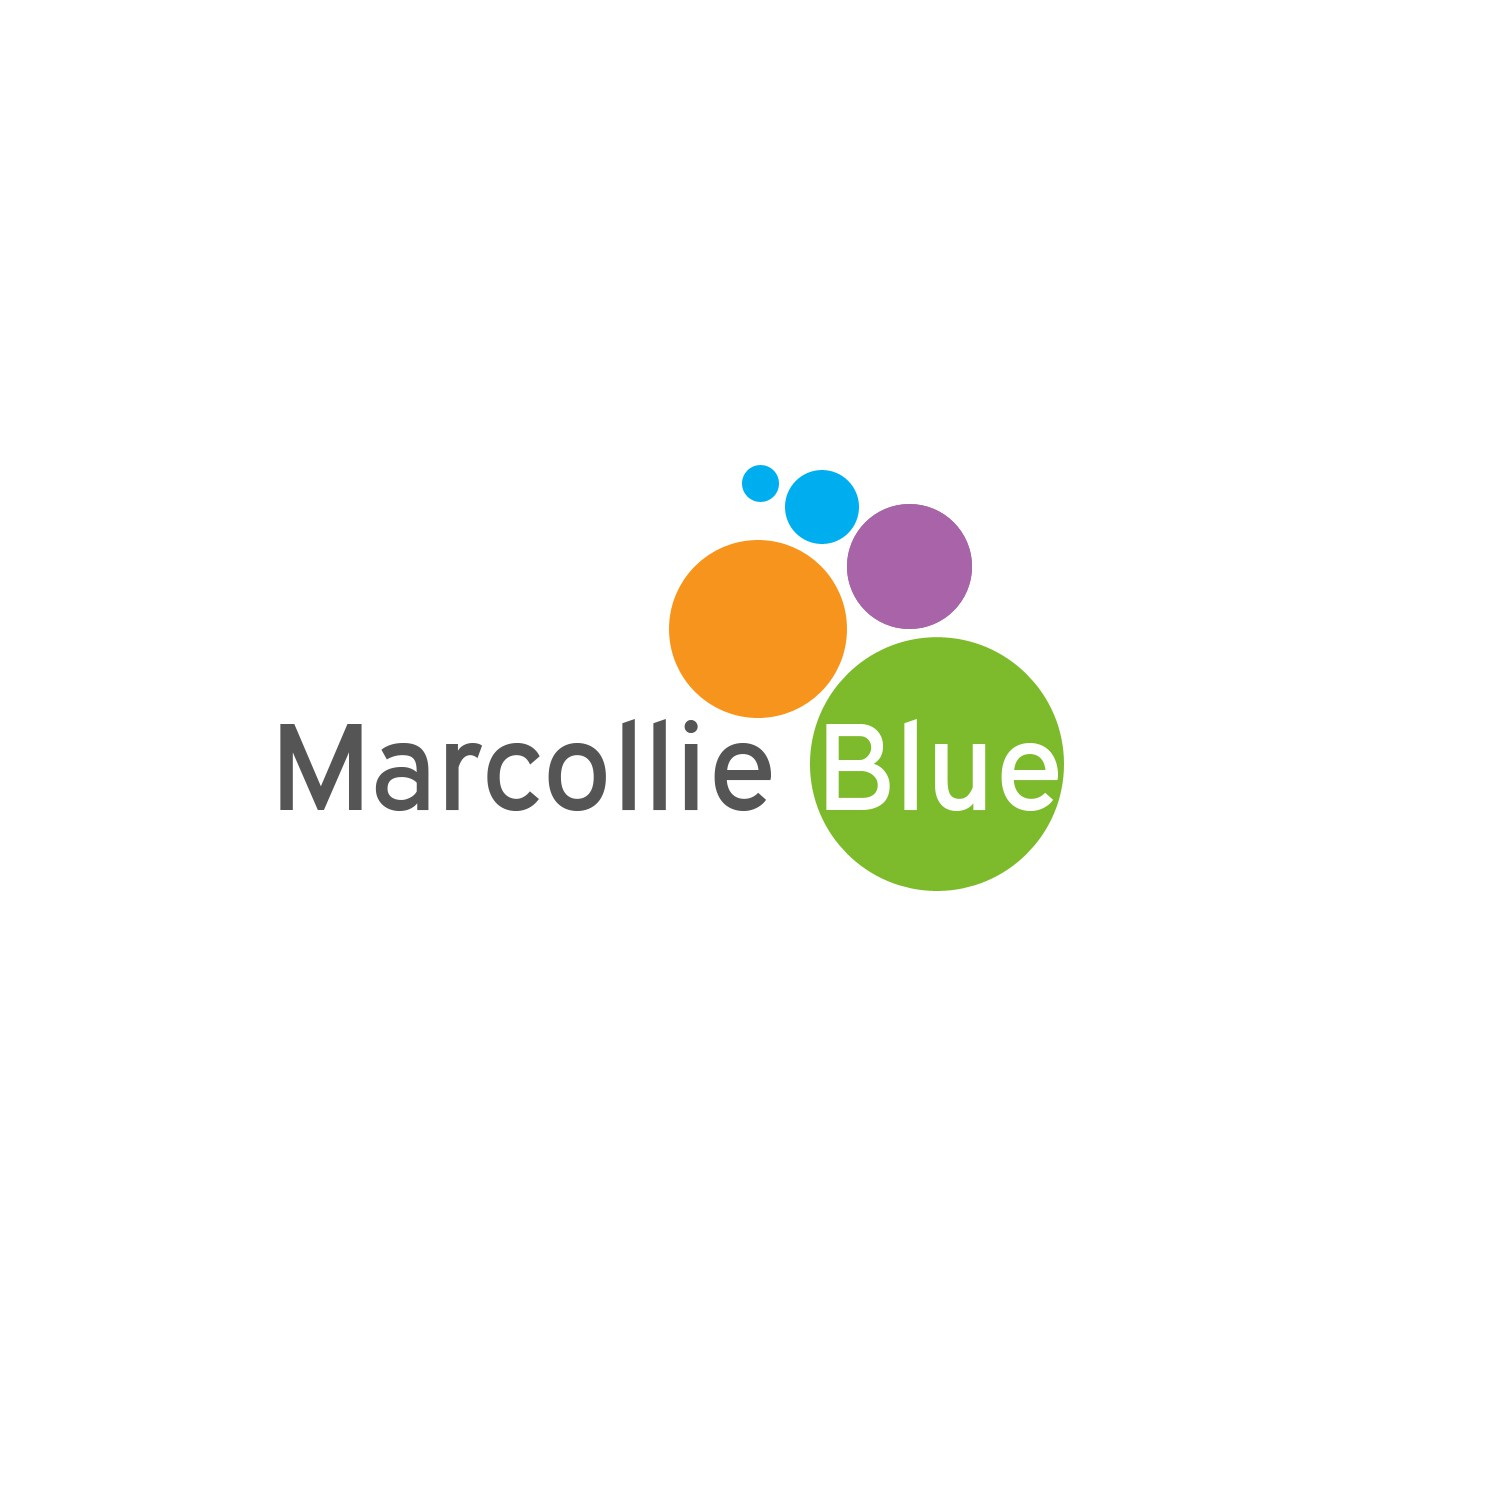 Create a new logo and business card for Marcollie Blue